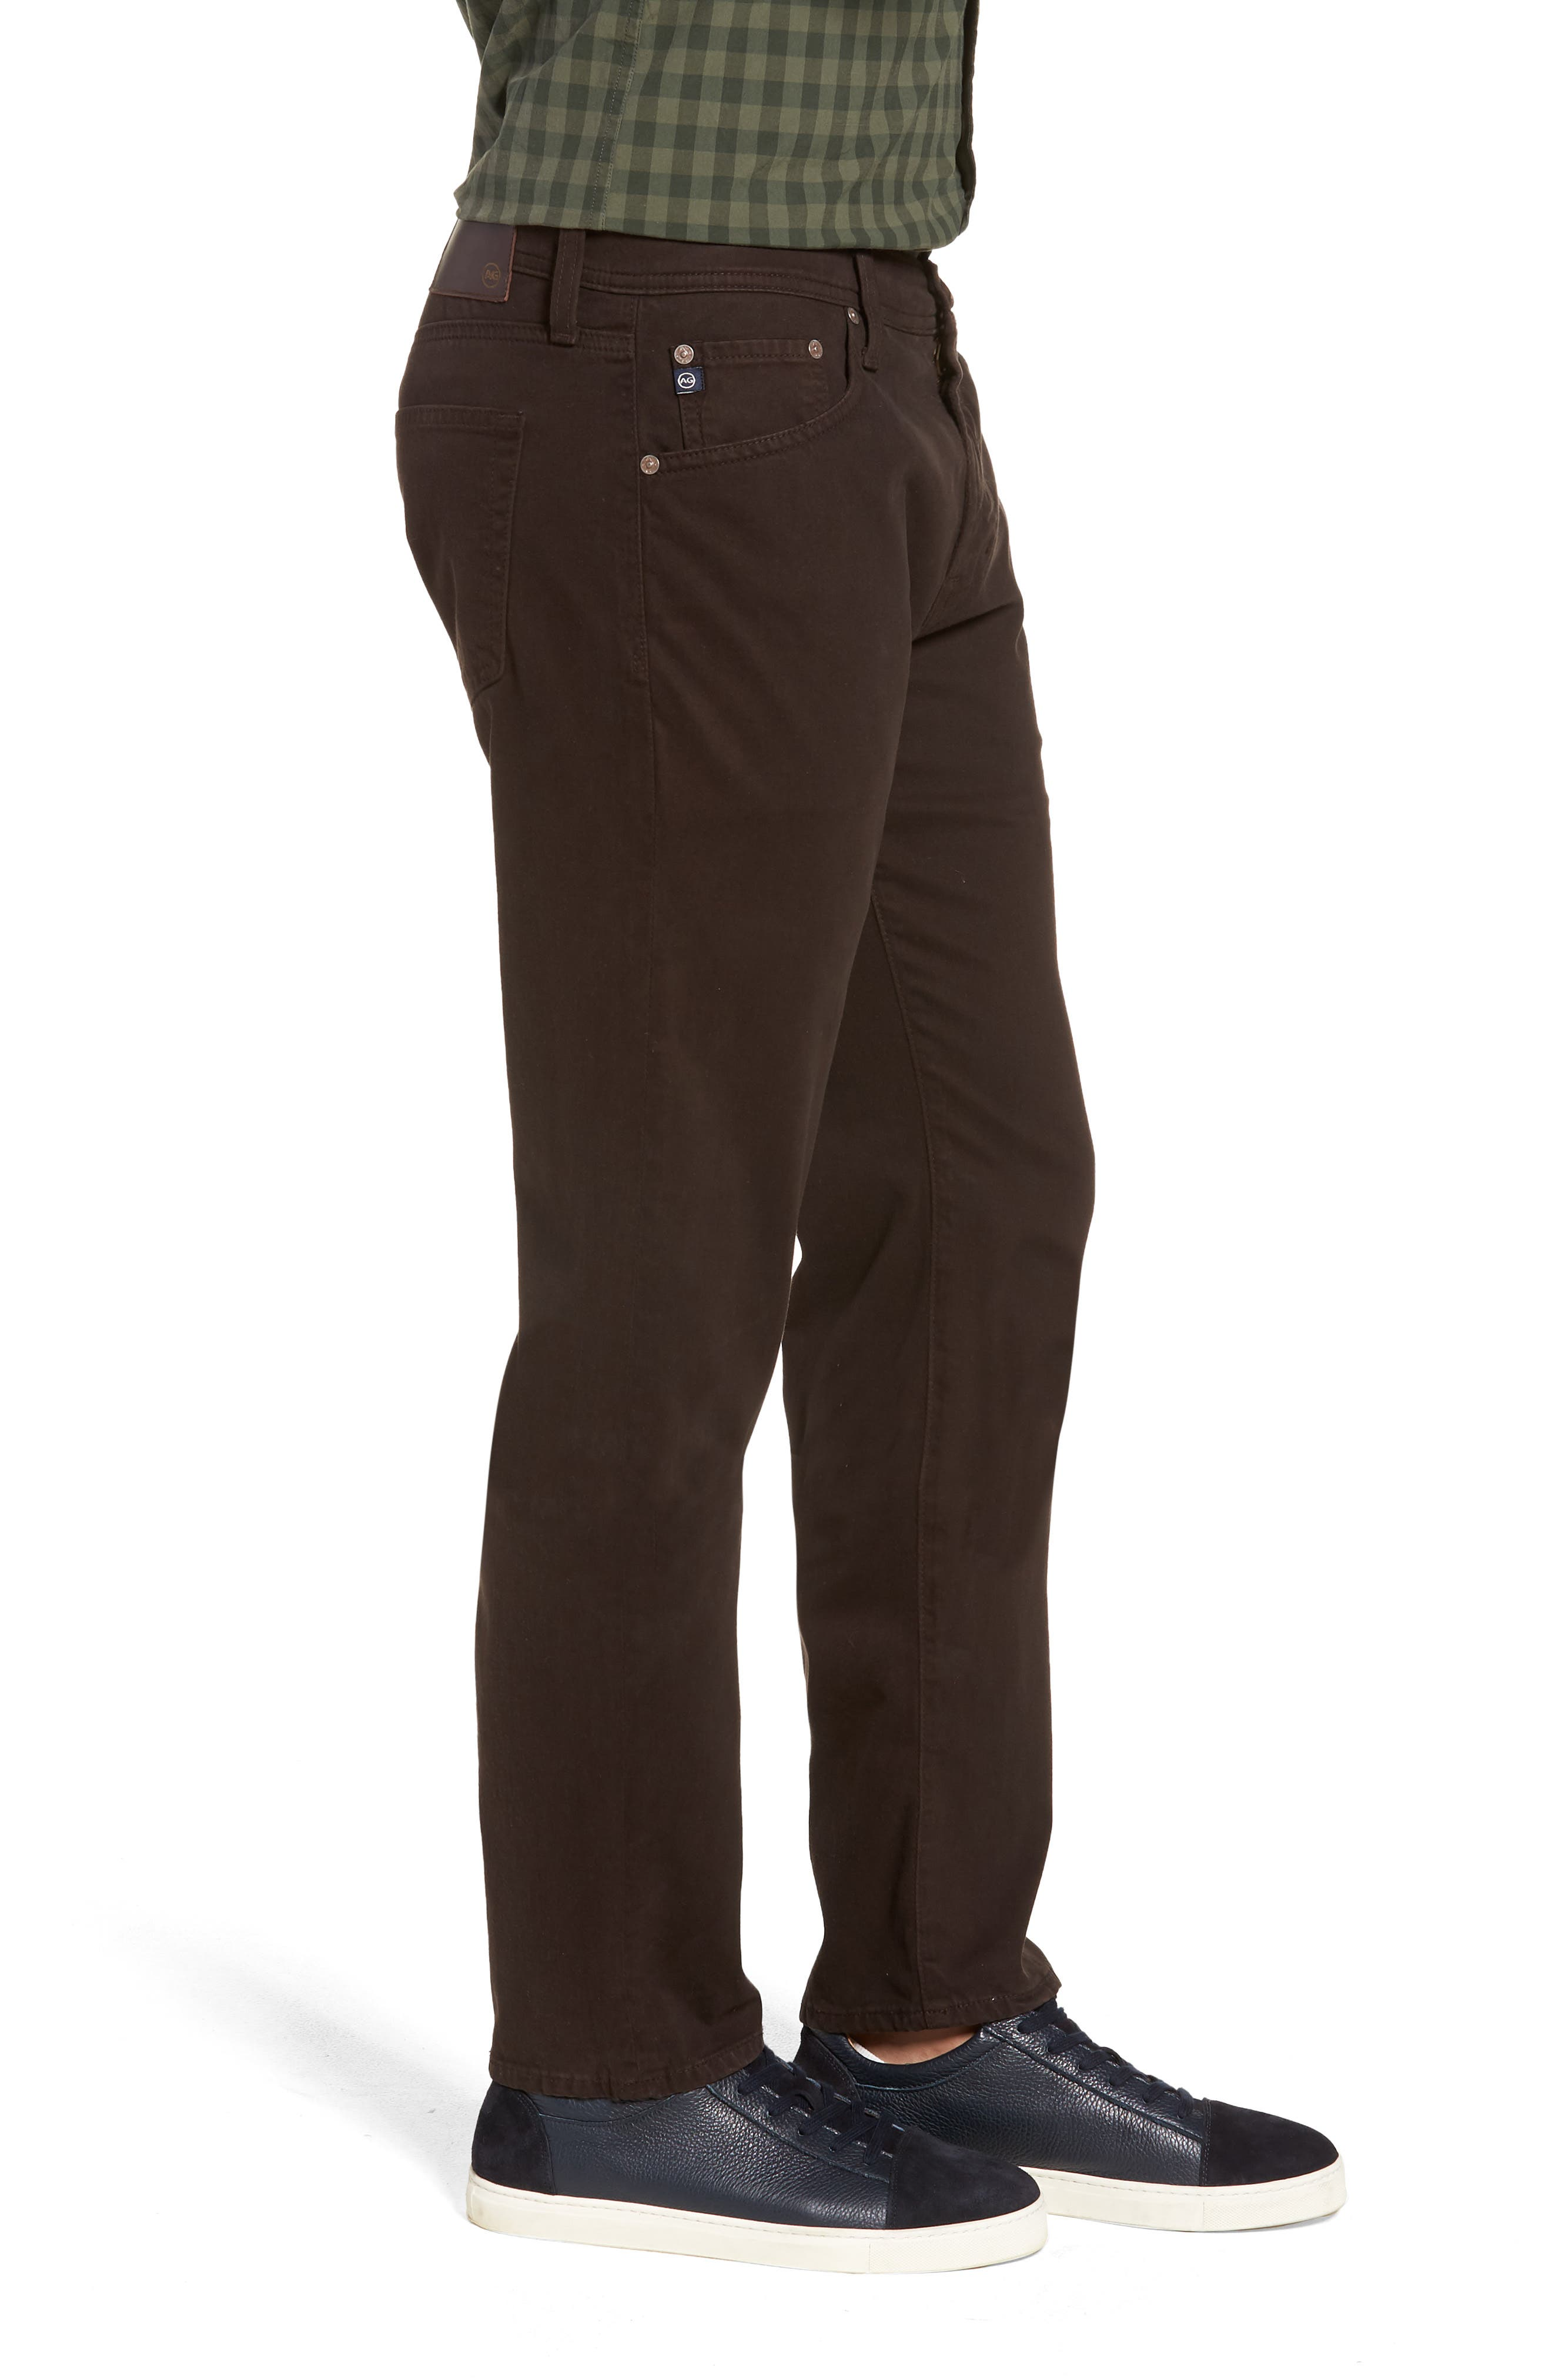 Tellis SUD Modern Slim Stretch Twill Pants,                             Alternate thumbnail 3, color,                             SHUTTER BROWN